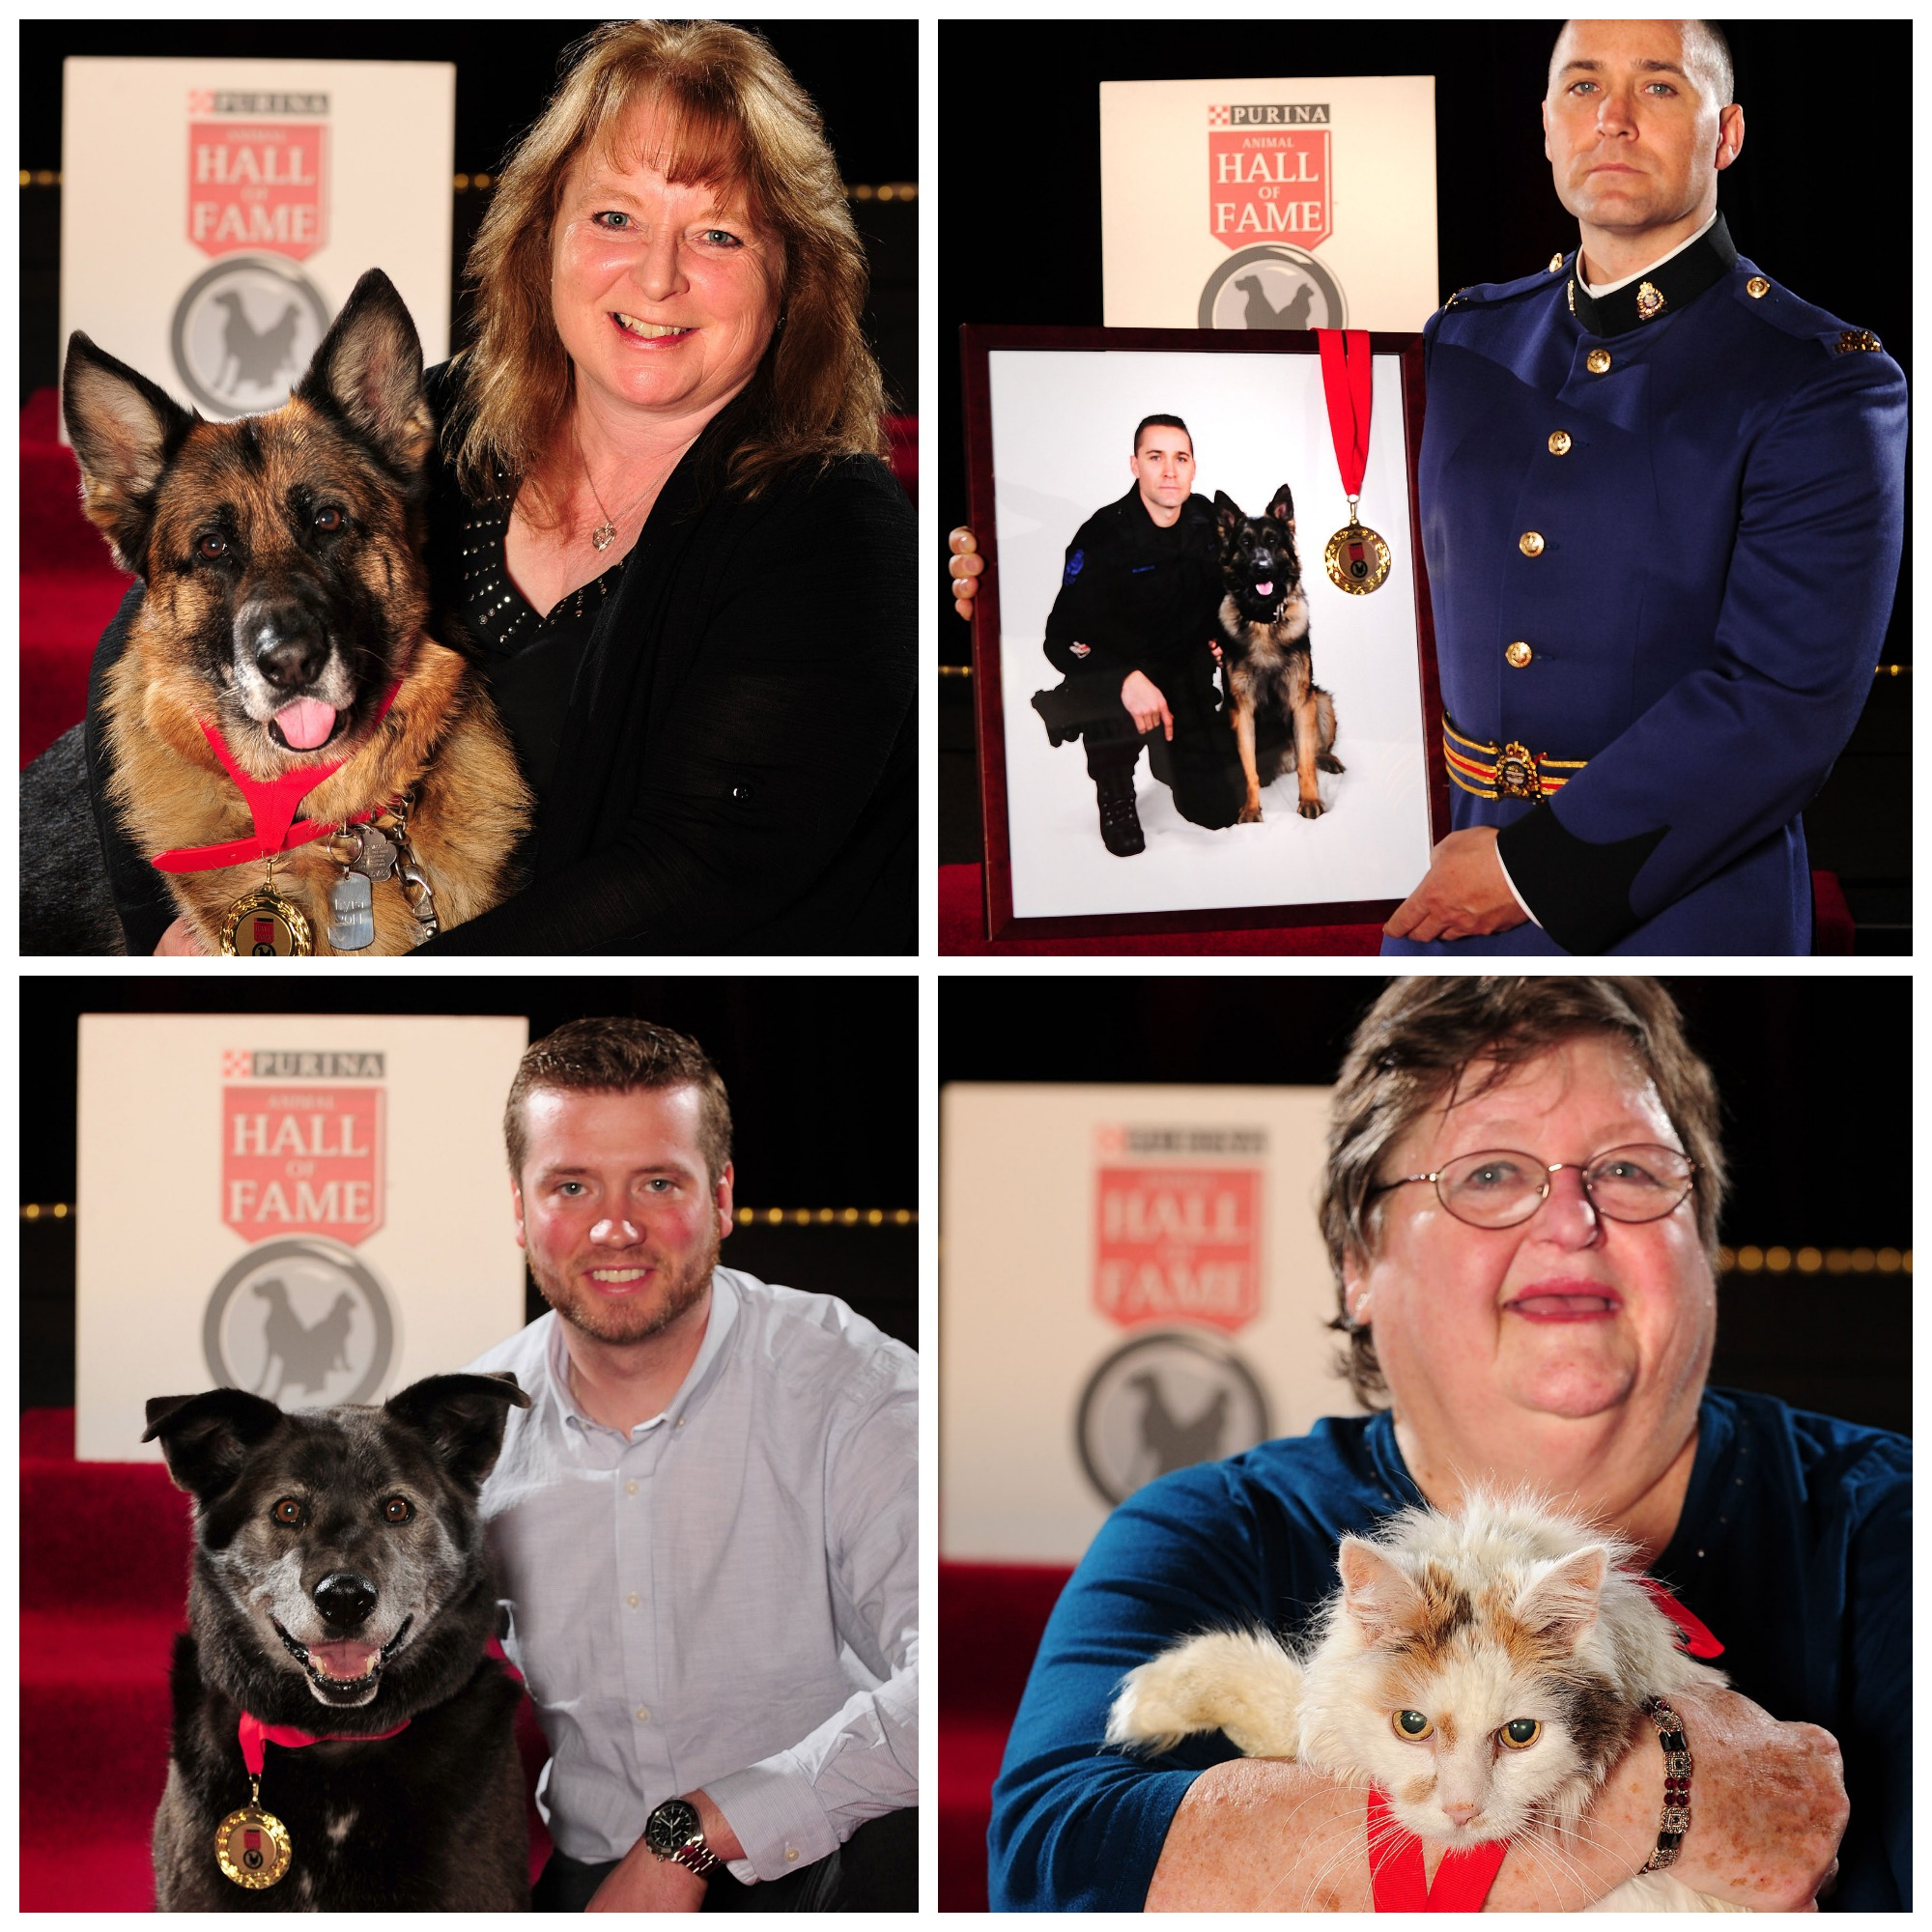 Tails of courage celebrated at the Purina Hall of Fame